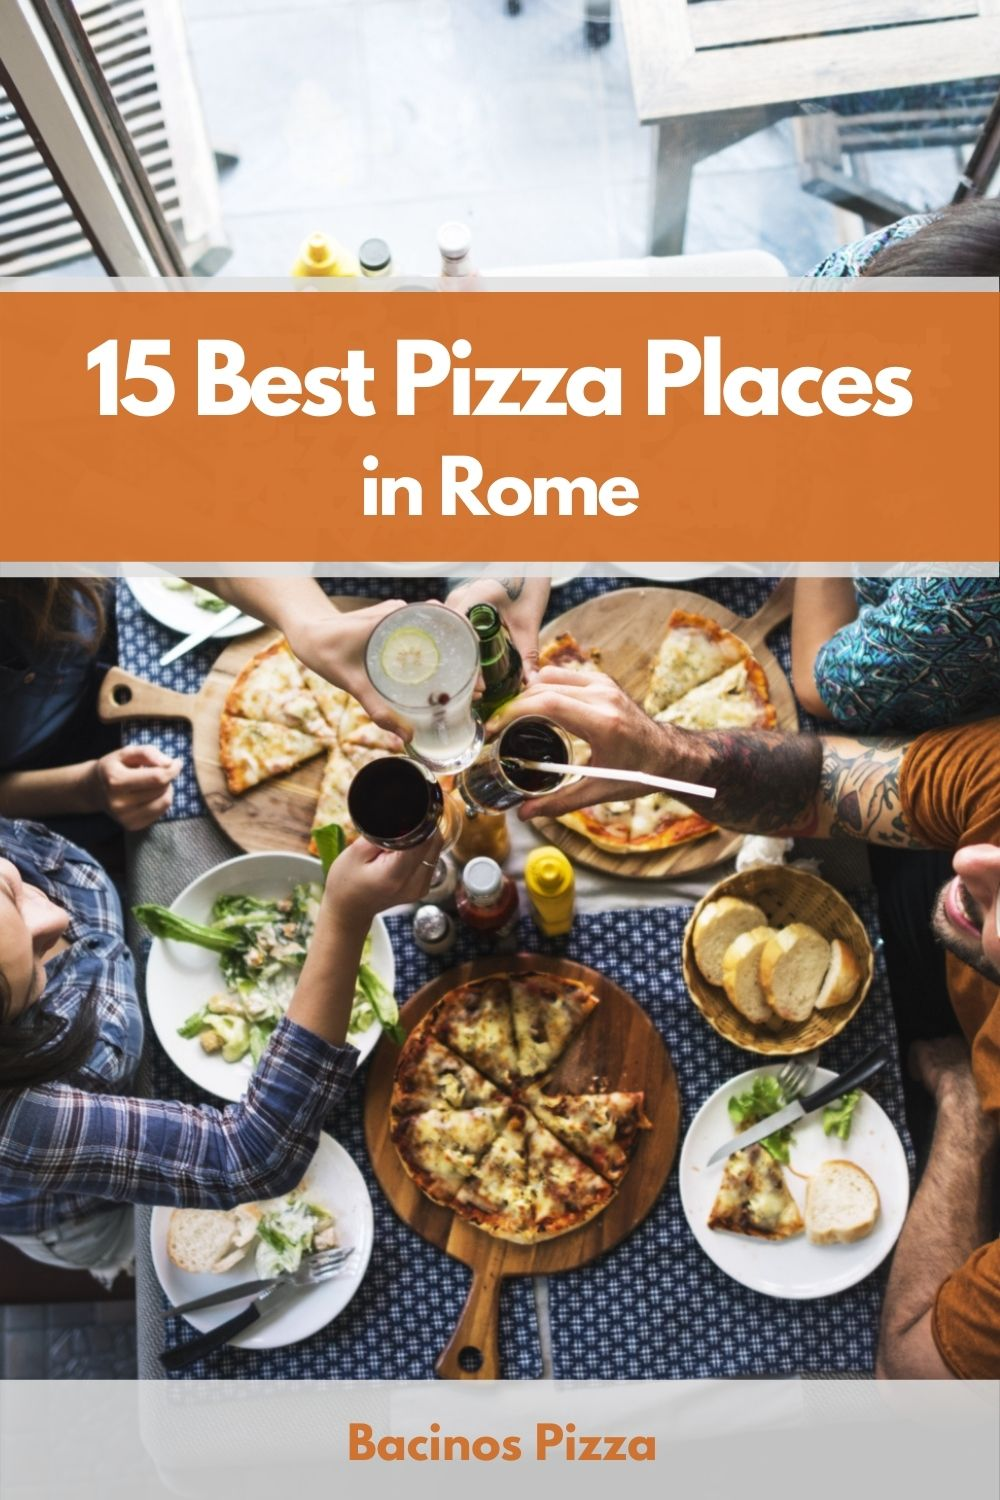 15 Best Pizza Places in Rome pin